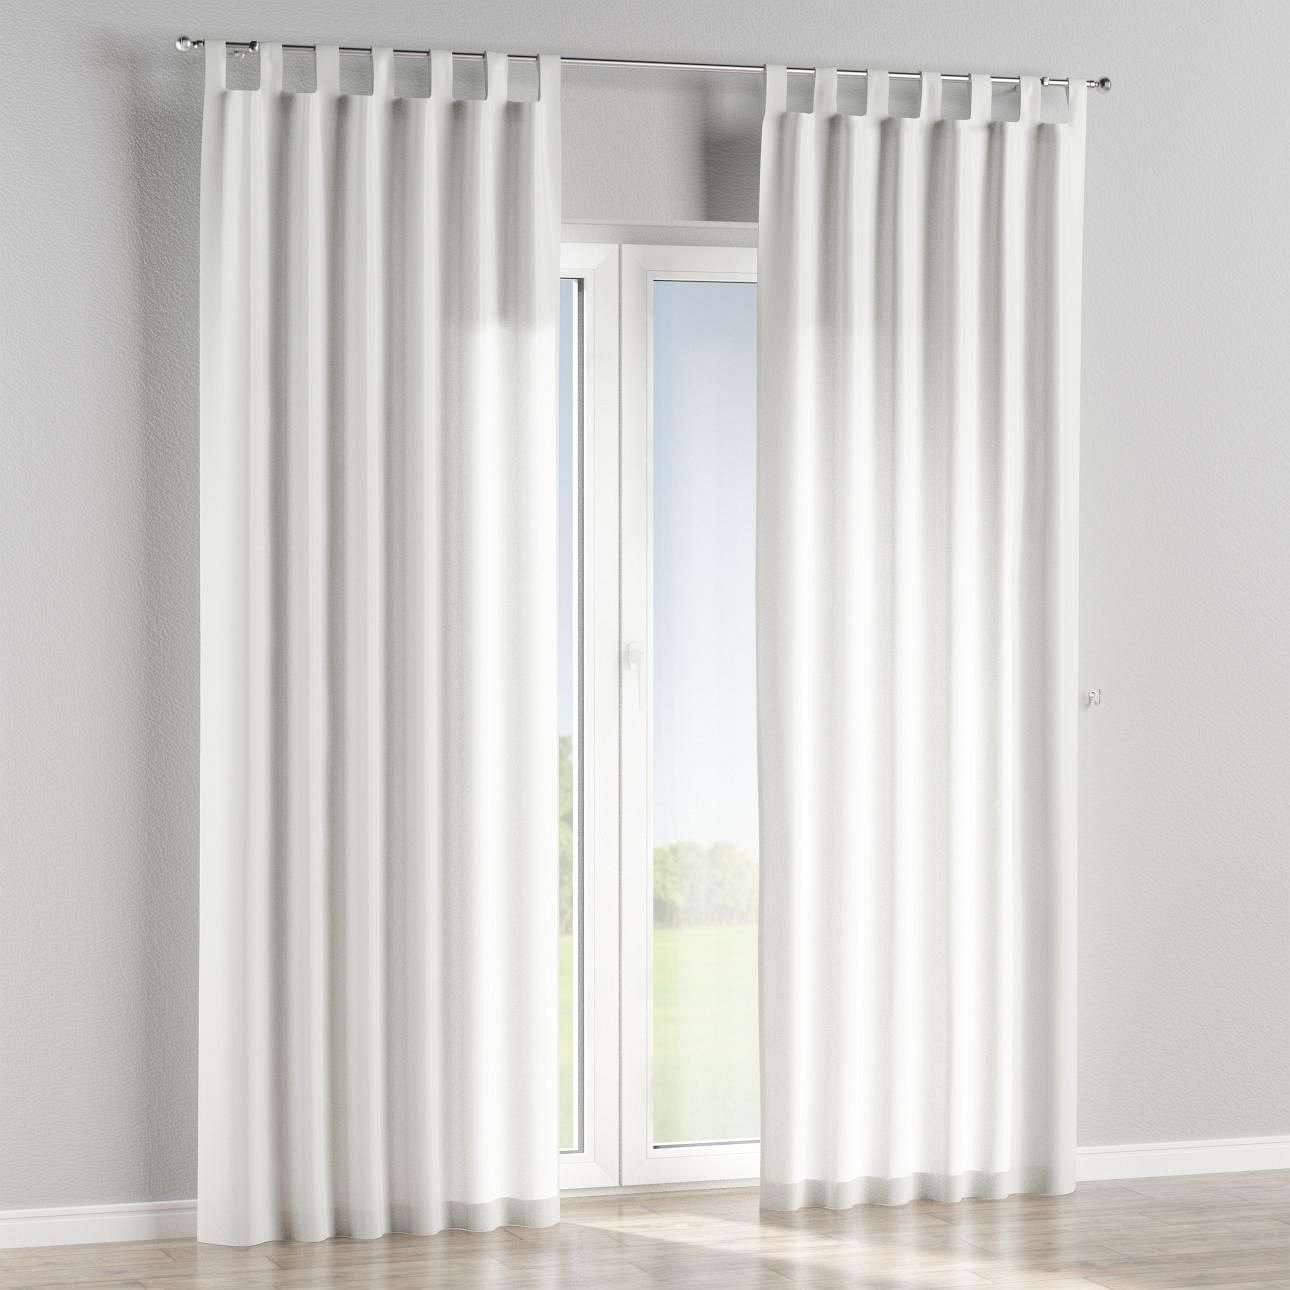 Tab top lined curtains in collection Rustica, fabric: 138-12